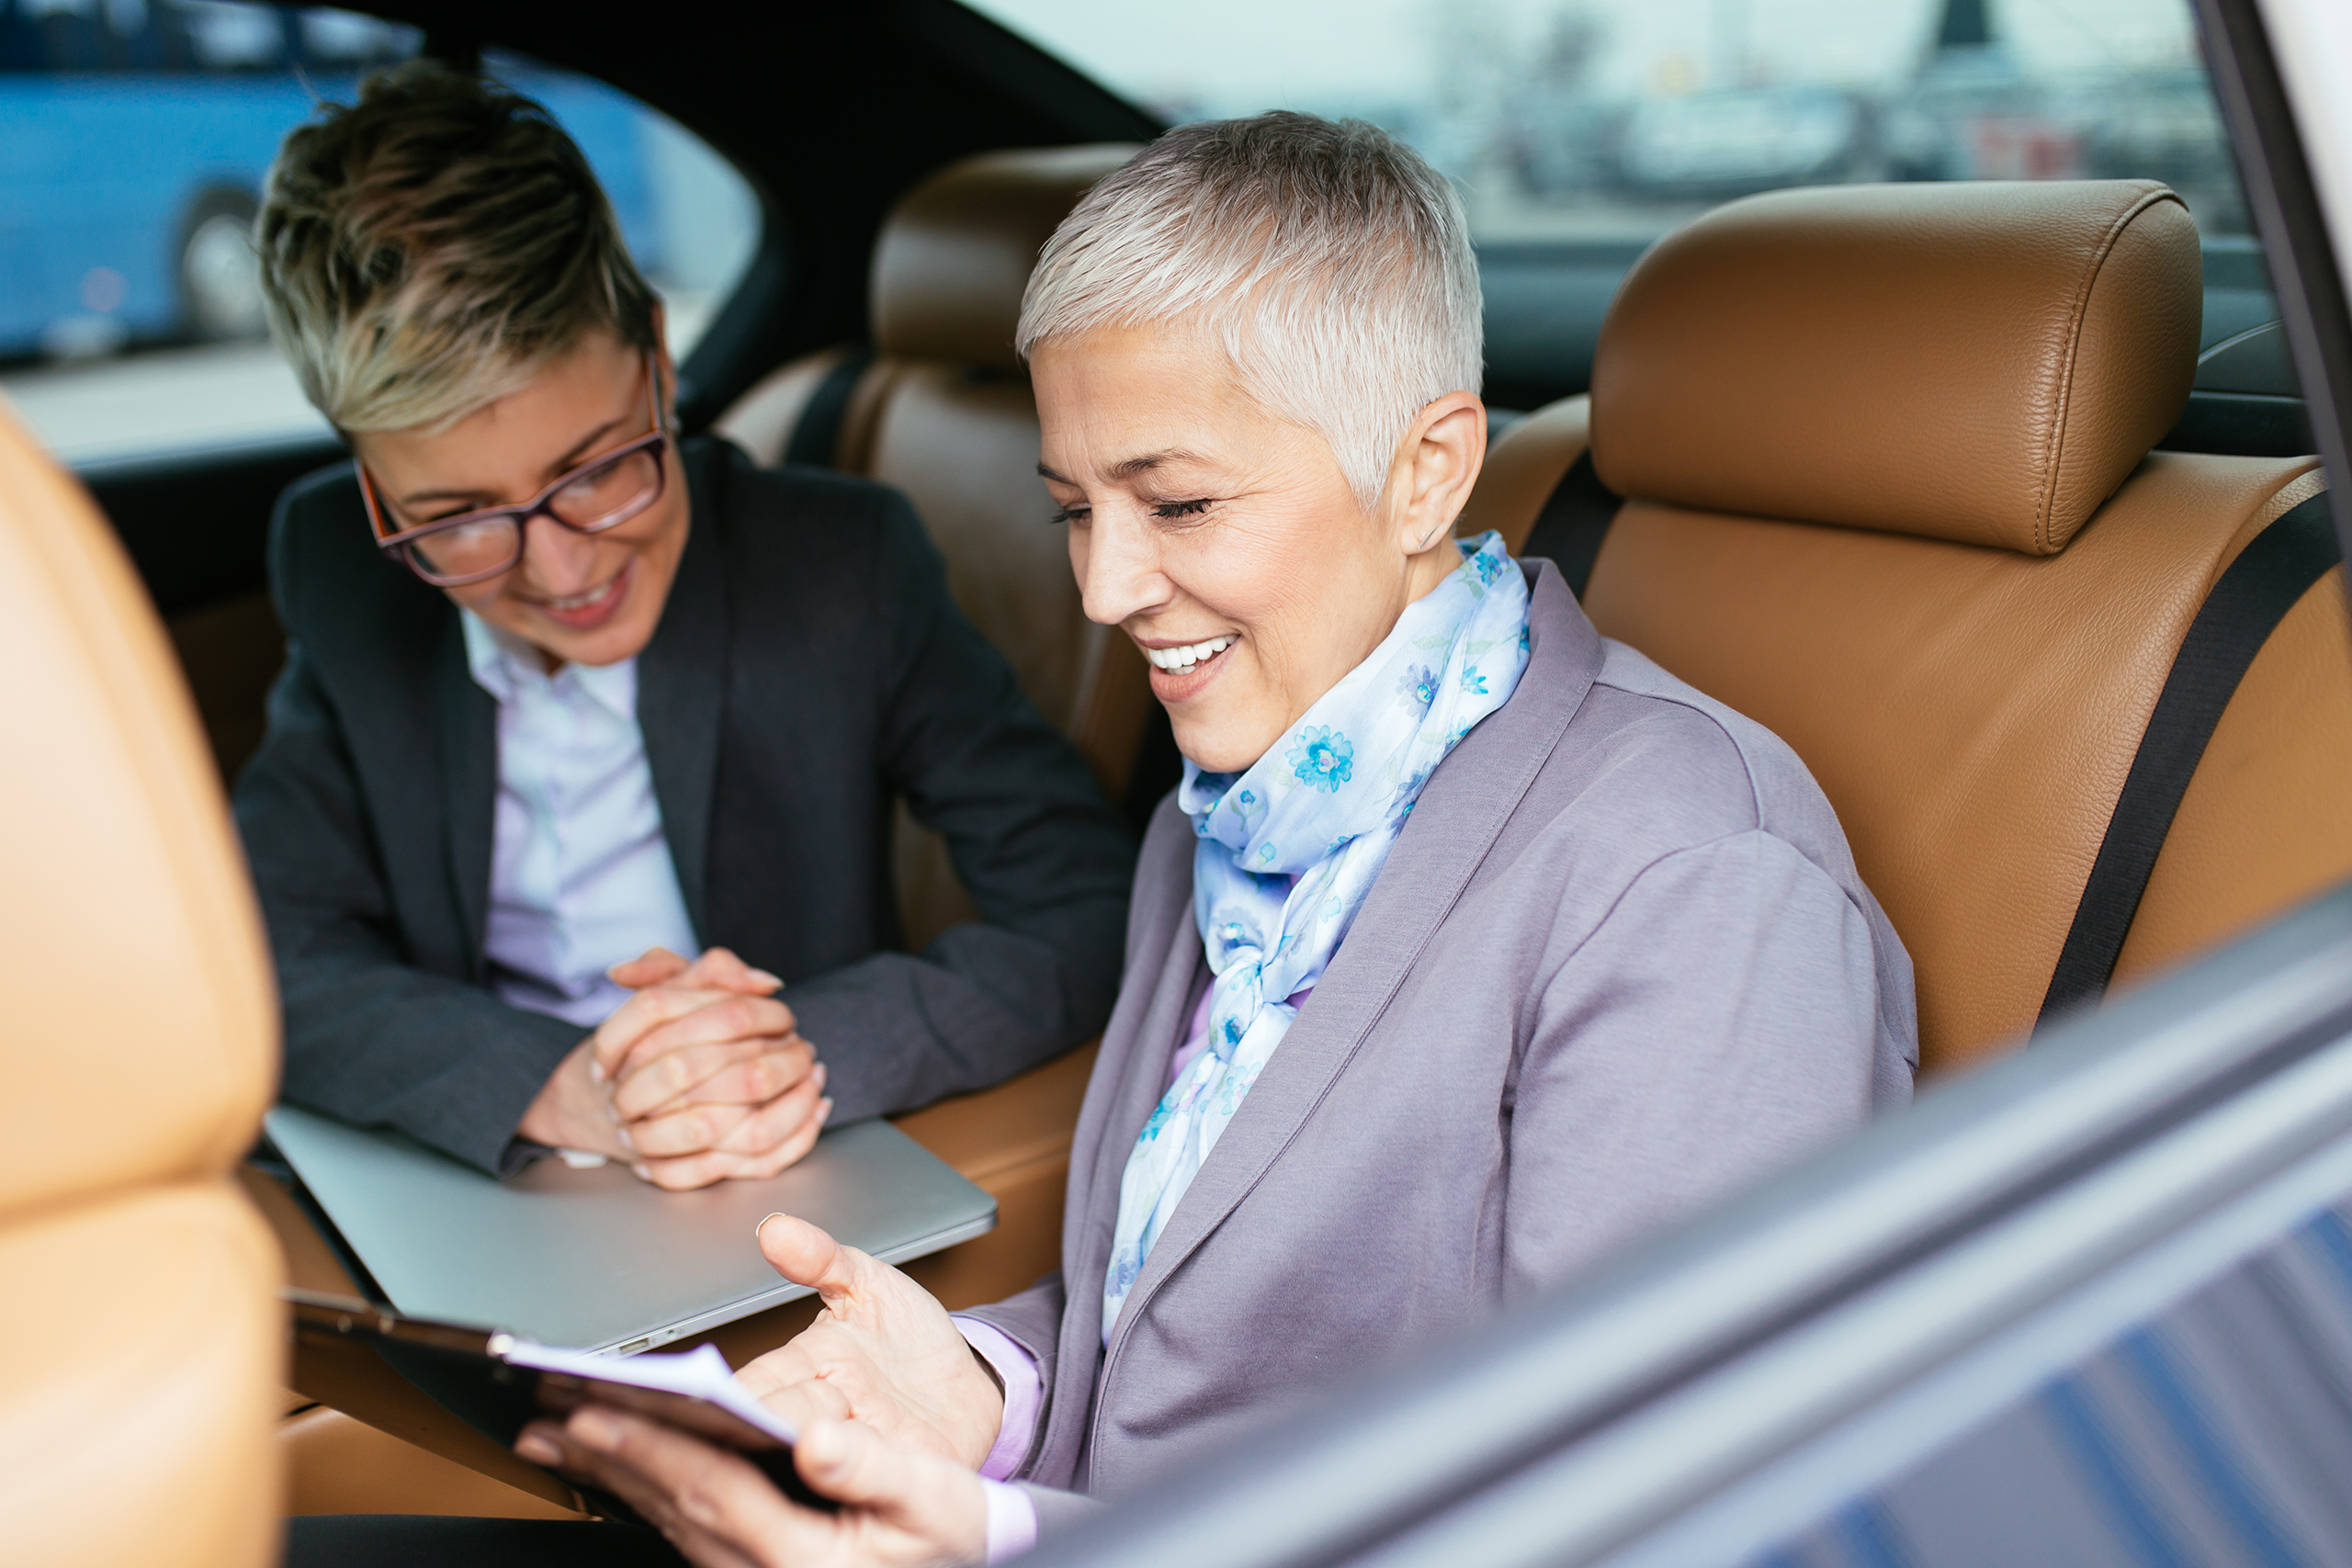 senior business woman with her assistant sitting in back of car texting message on mobile